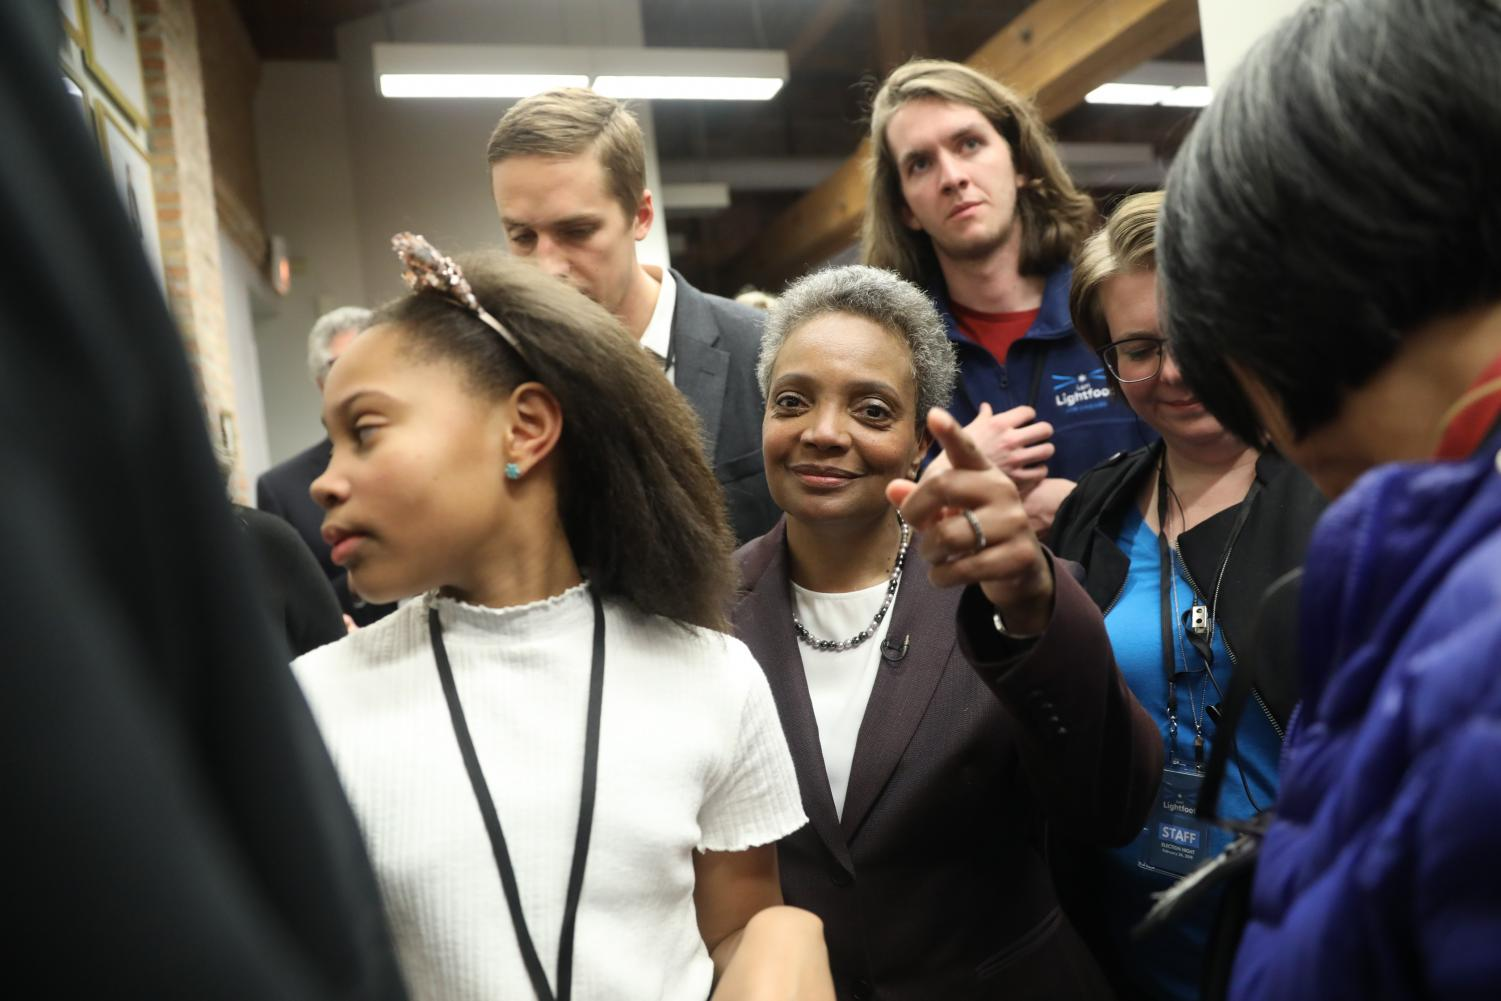 Mayoral candidate Lori Lightfoot and her daughter Vivian Lightfoot appear with supporters Tuesday night, Feb. 26, 2019 at EvolveHer in Chicago.